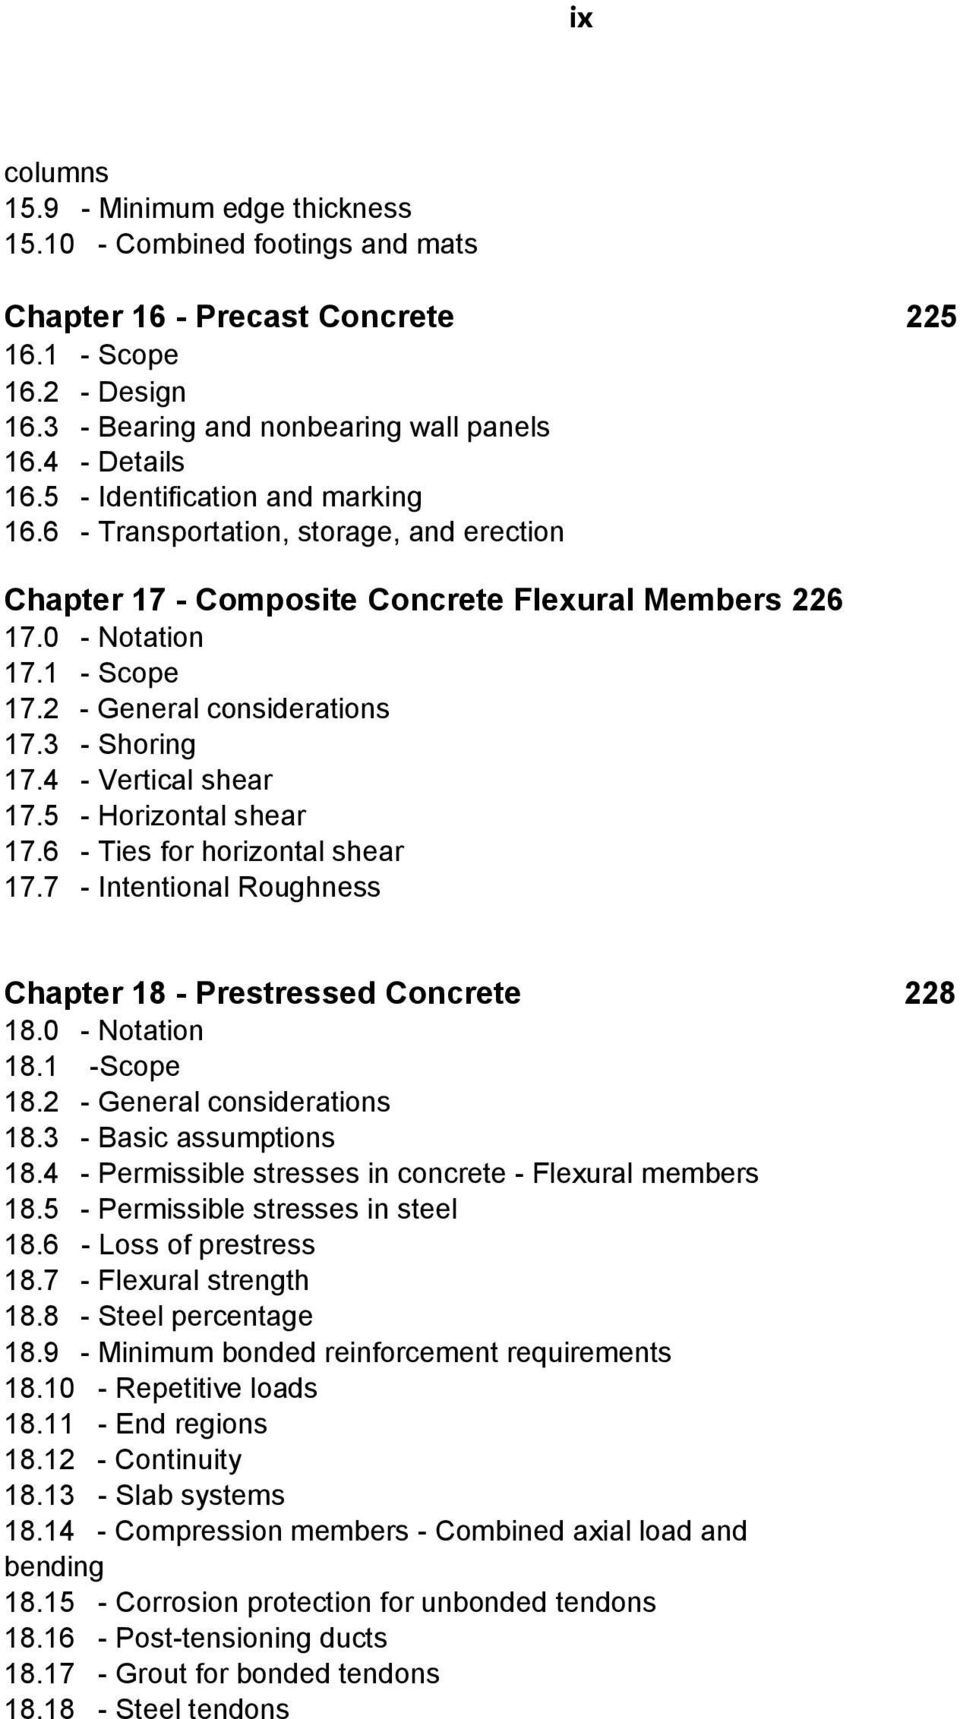 3 - Shoring 17.4 - Vertical shear 17.5 - Horizontal shear 17.6 - Ties for horizontal shear 17.7 - Intentional Roughness Chapter 18 - Prestressed Concrete 228 18.0 - Notation 18.1 -Scope 18.